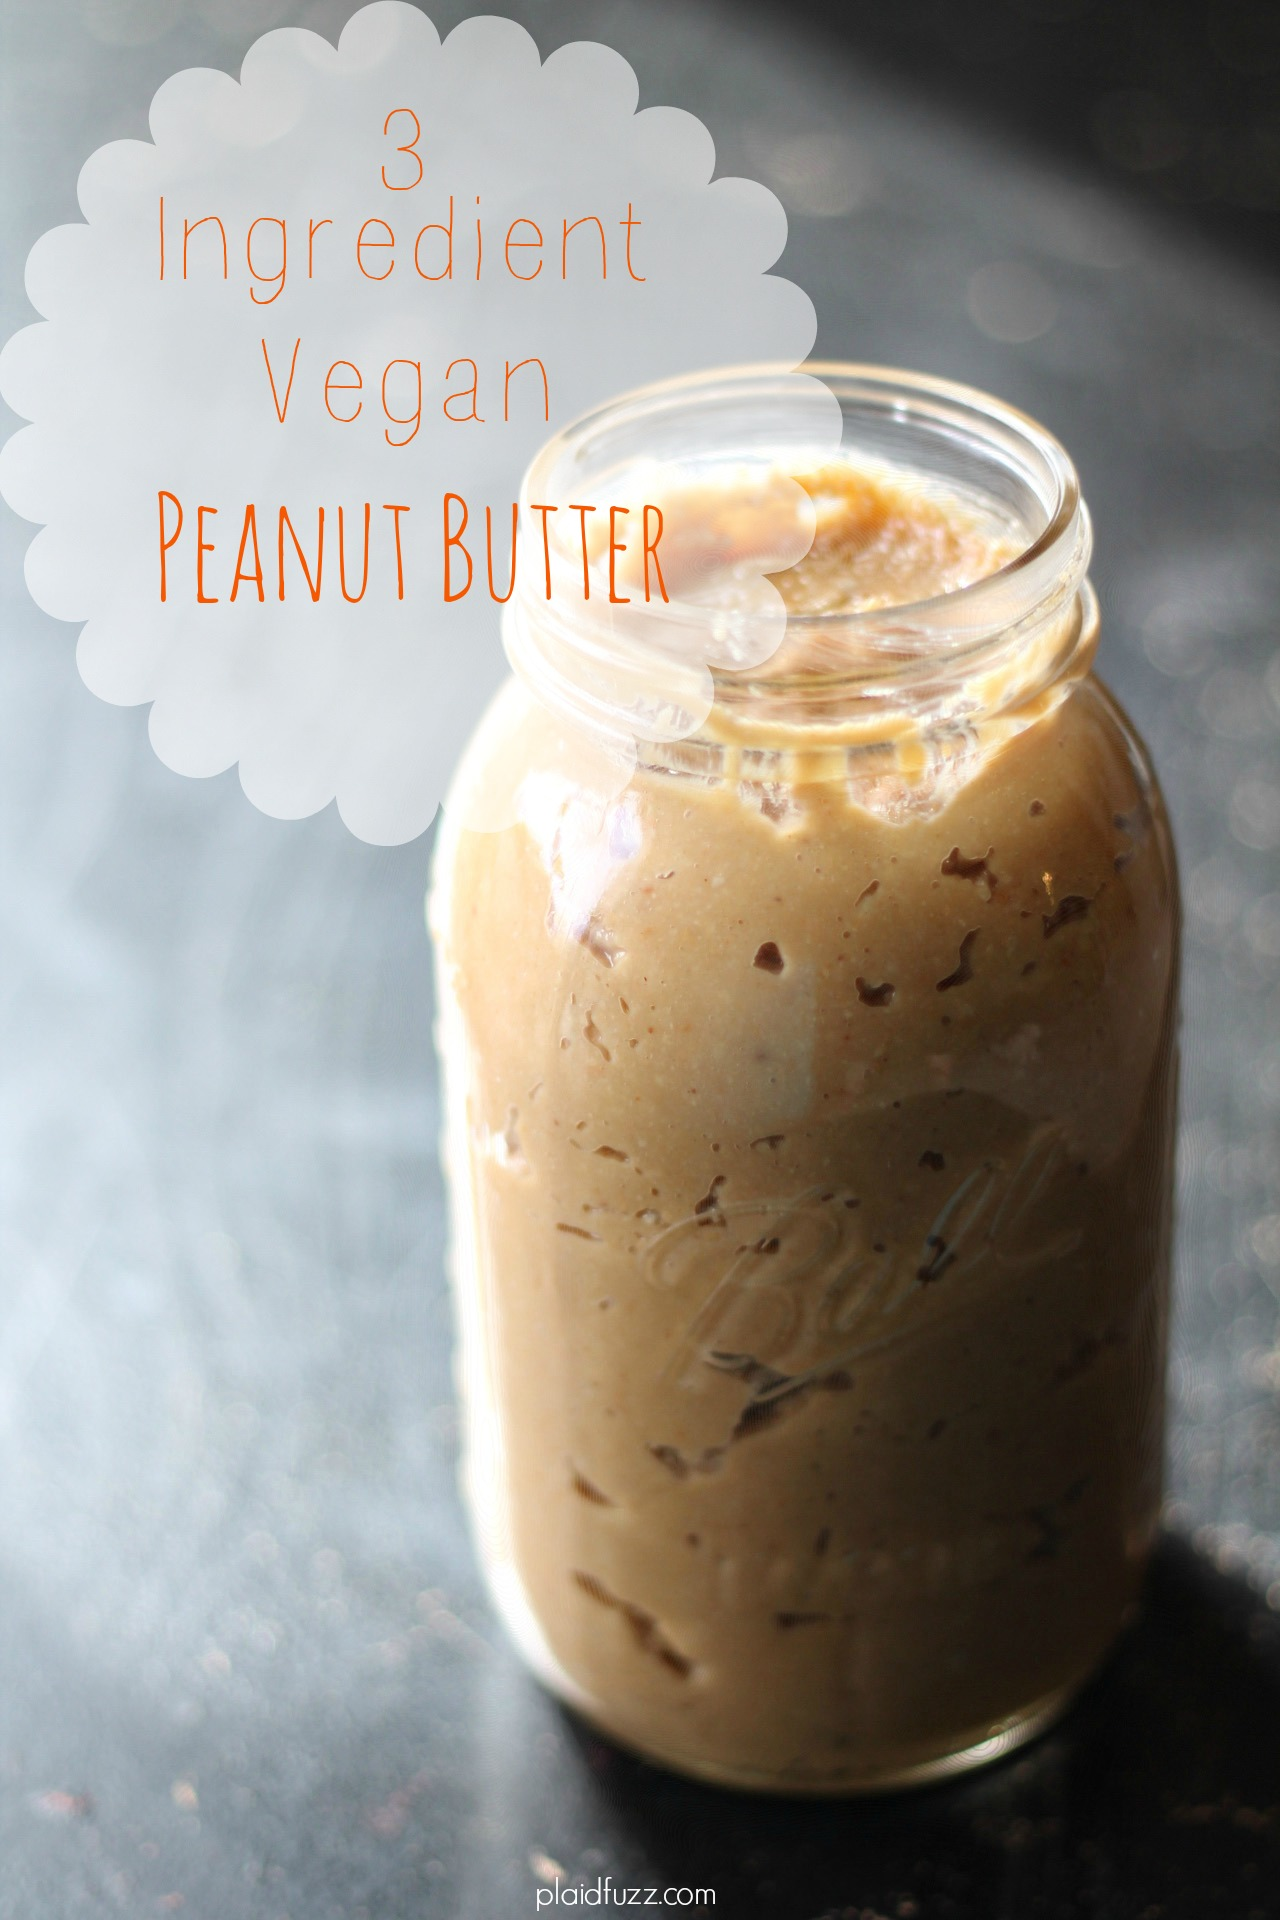 3 Ingredient Vegan Peanut Butter